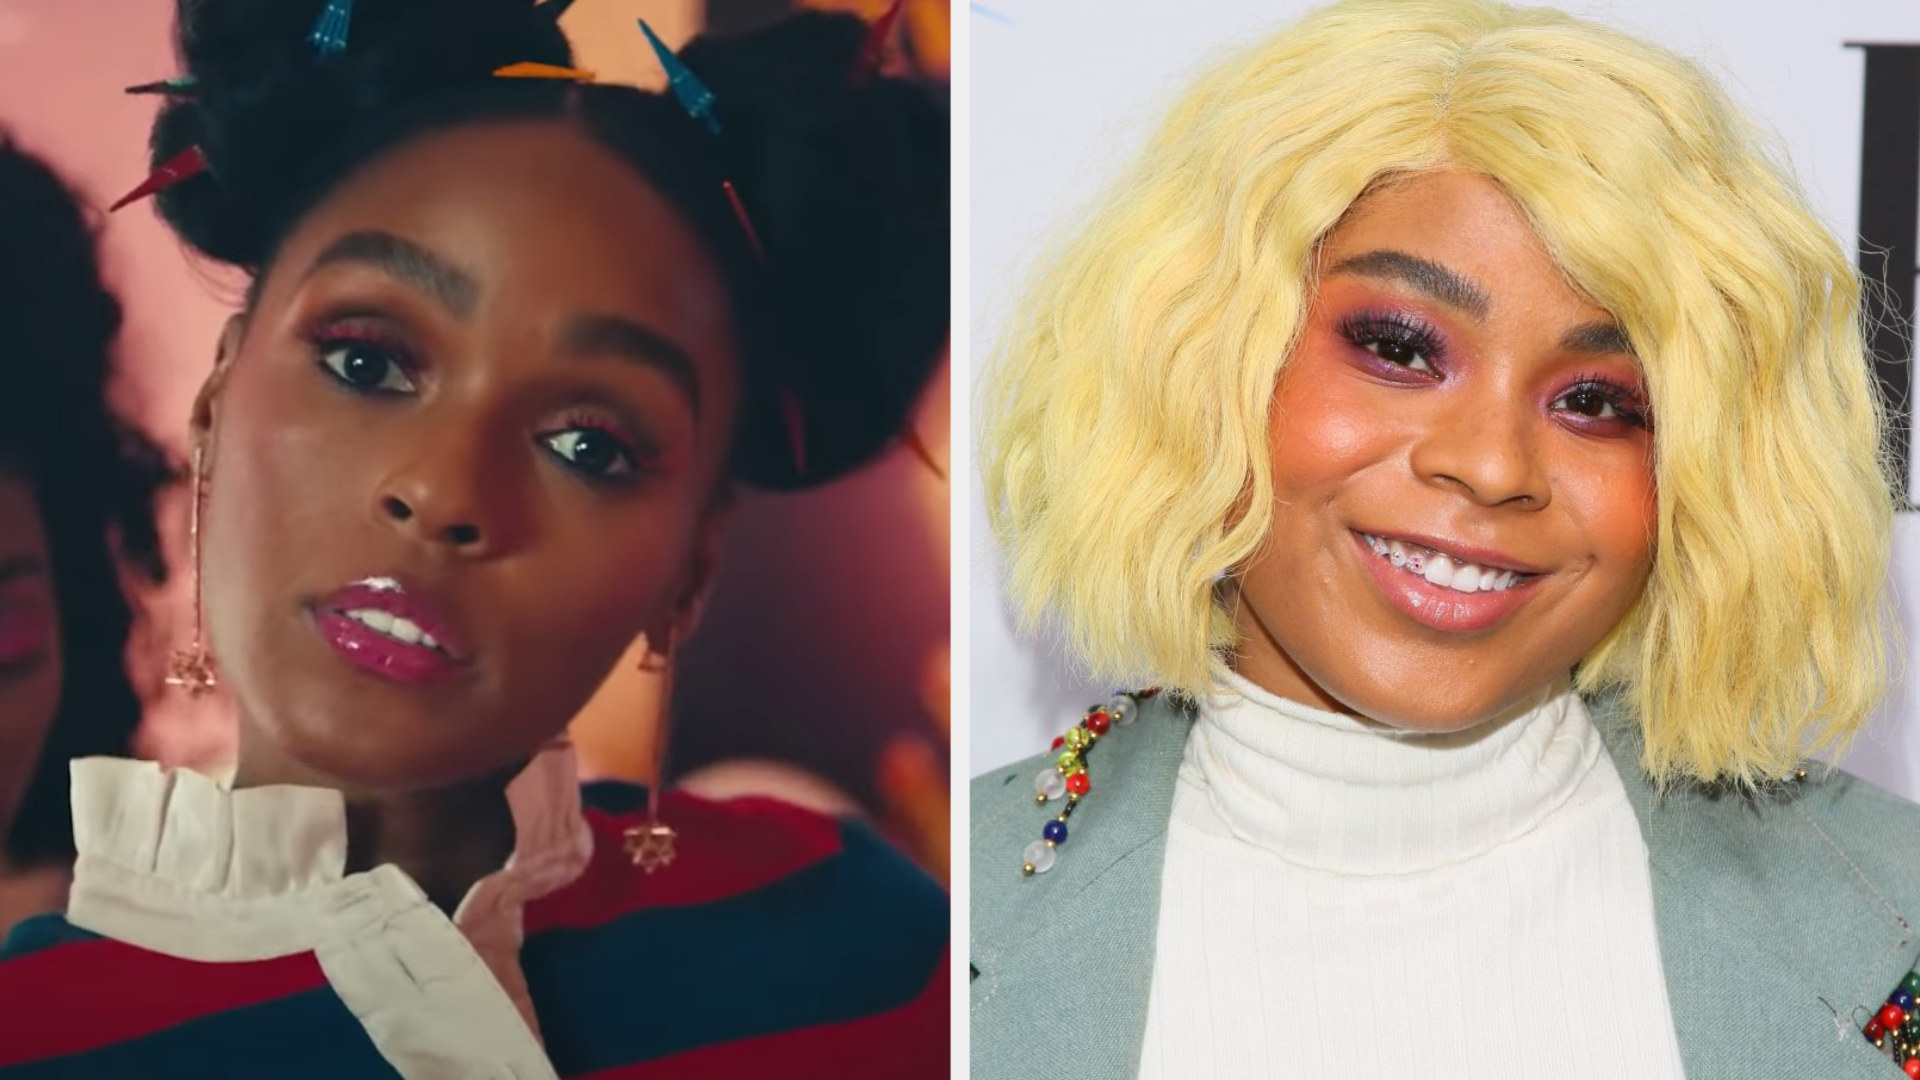 """Janelle Monáe in the """"Pynk"""" music video; Tayla Parx at the BMI Pop Awards in 2019"""